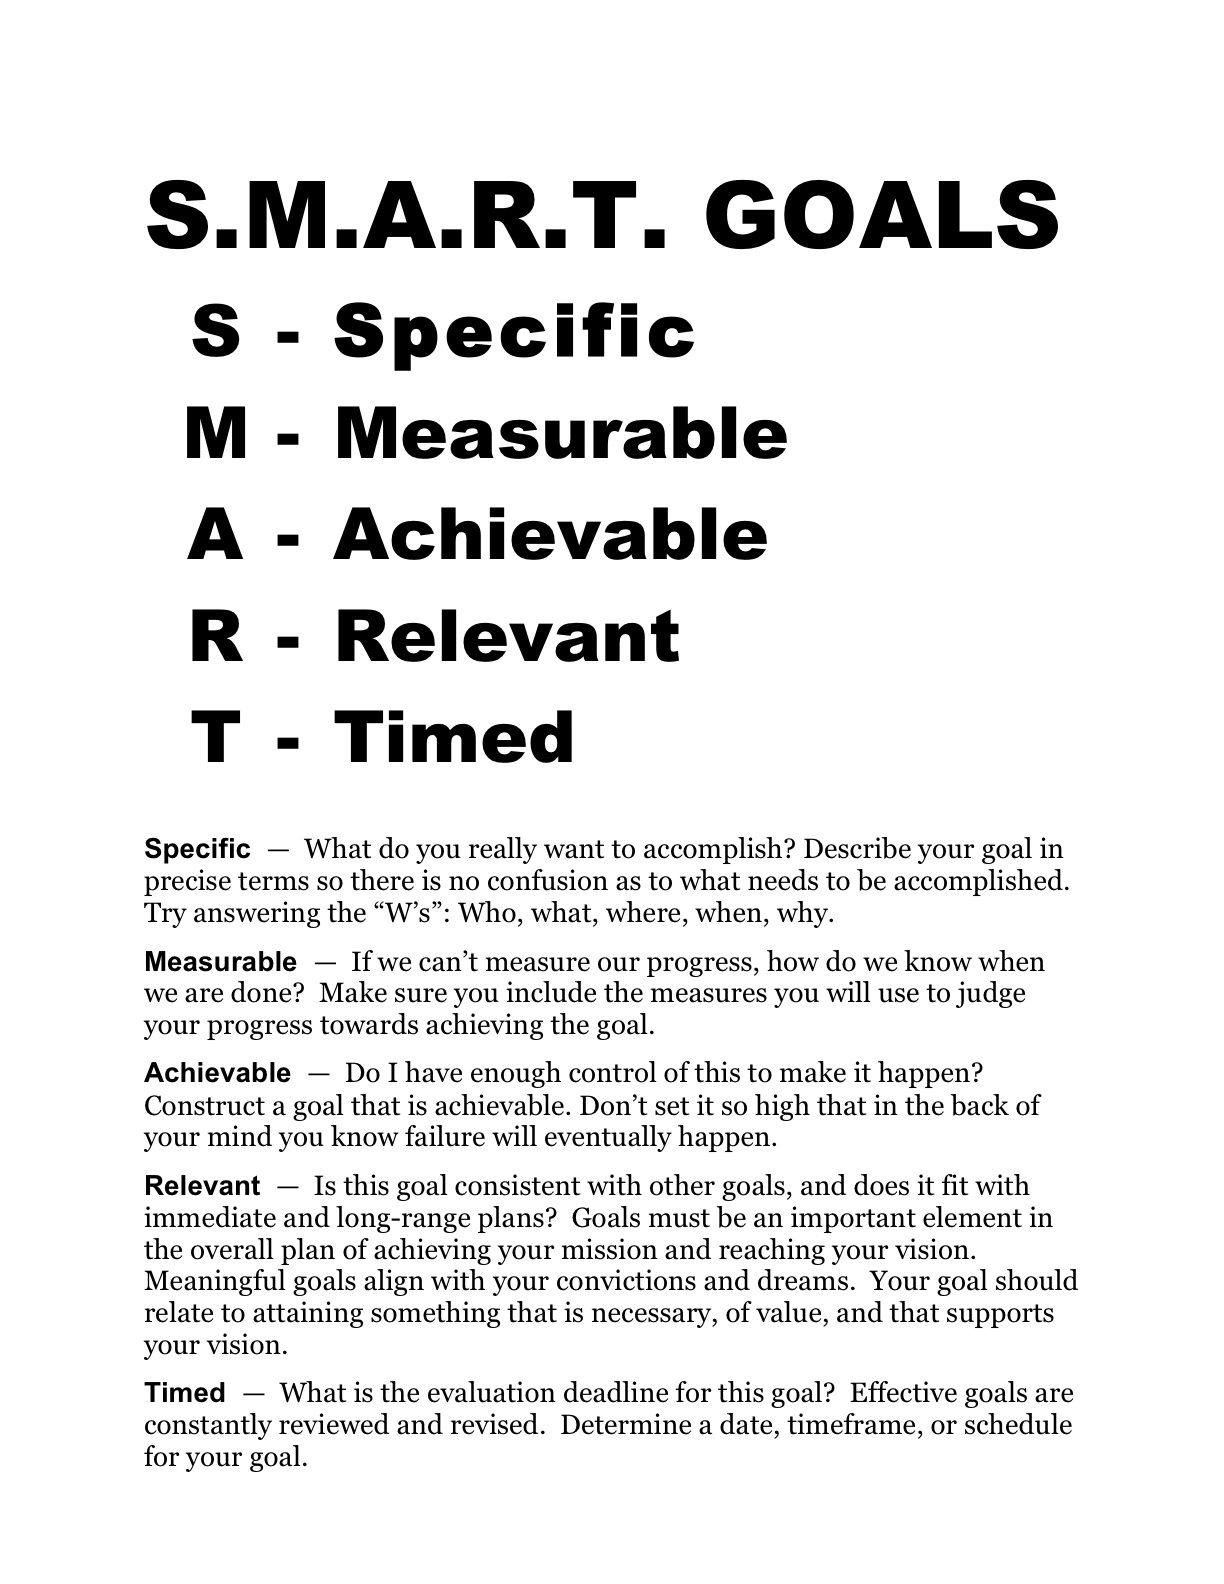 Smart Goals Worksheet